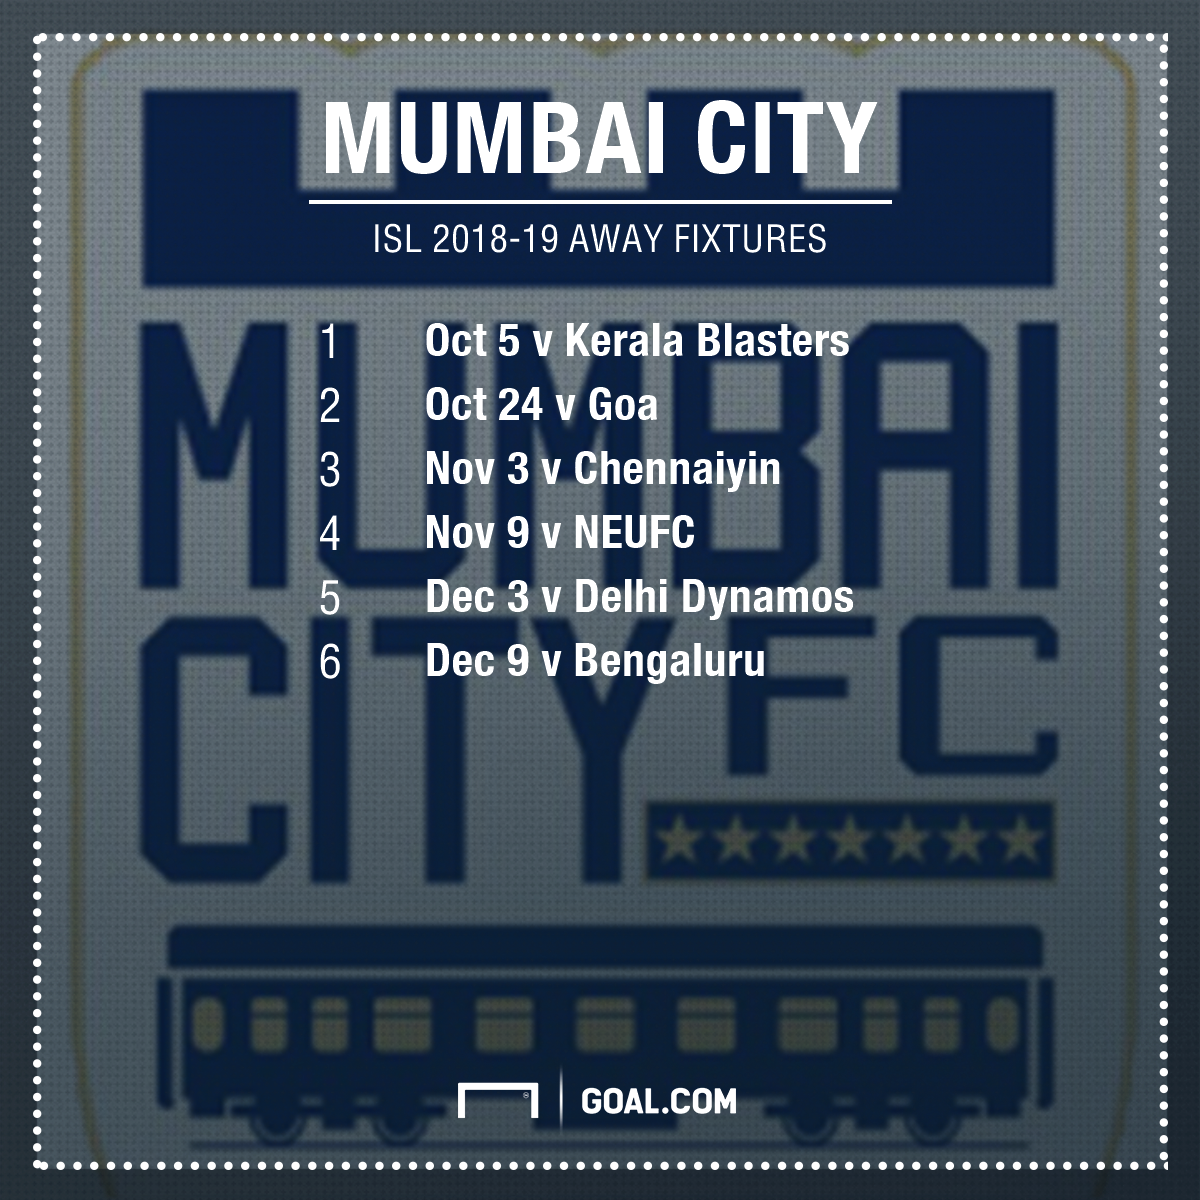 Mumbai City FC away fixtures